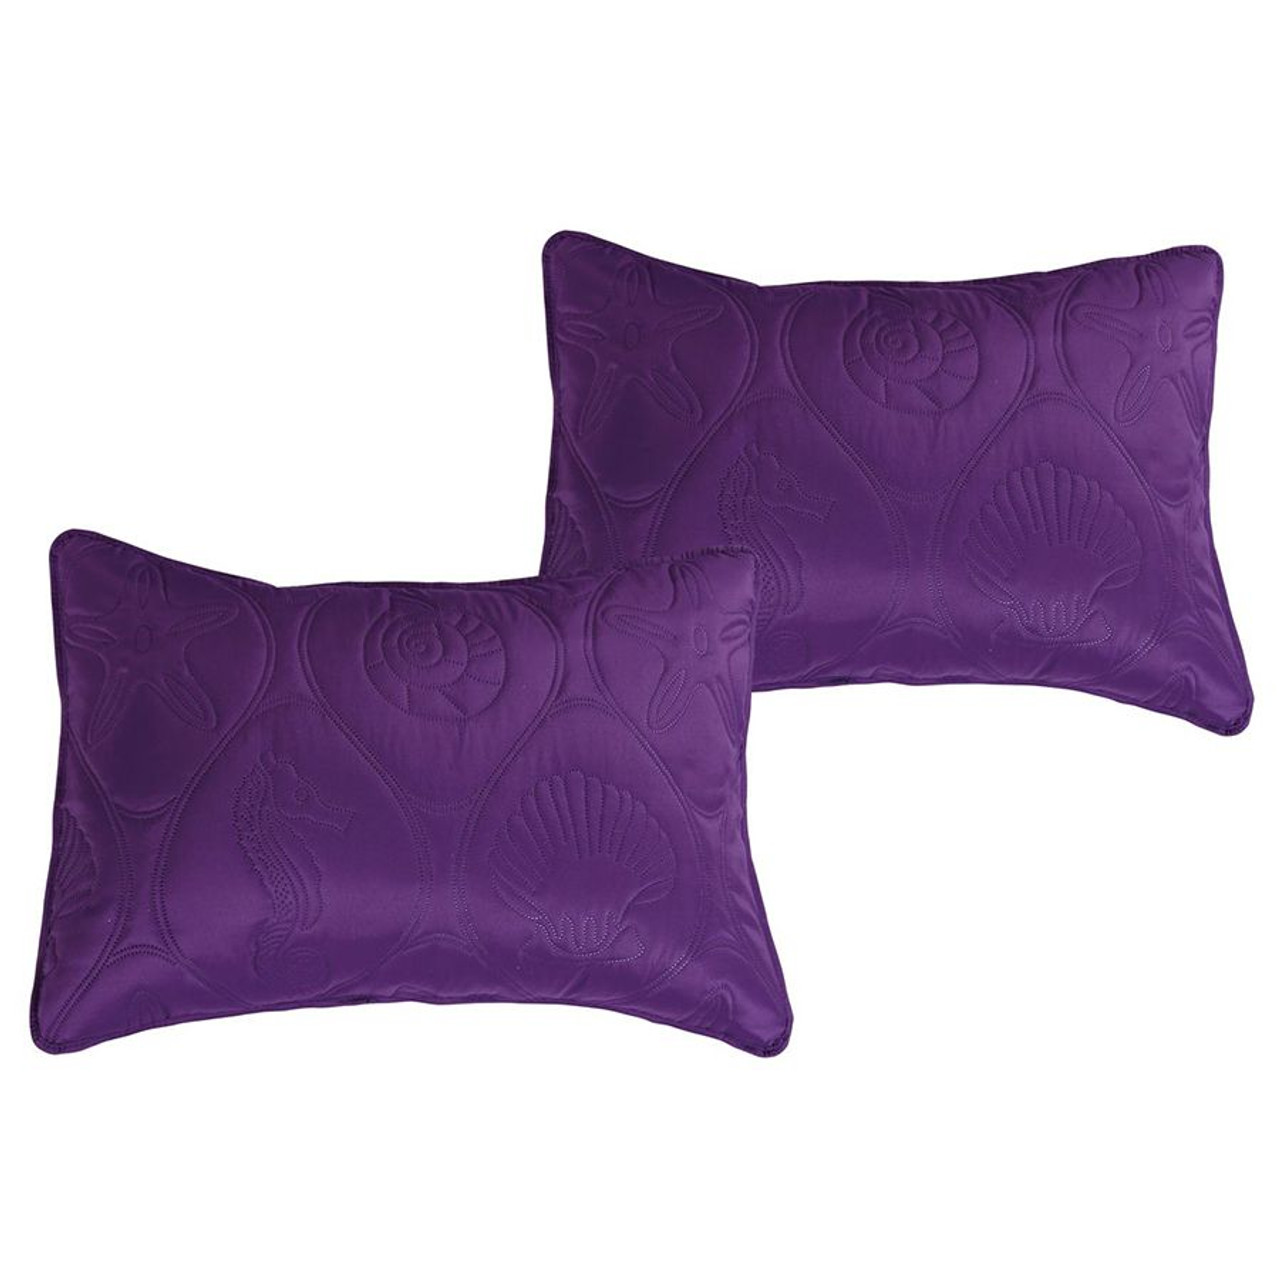 3 PC Shell & Seahorse Stitched Pinsonic Reversible Oversized Bedspread Purple Color